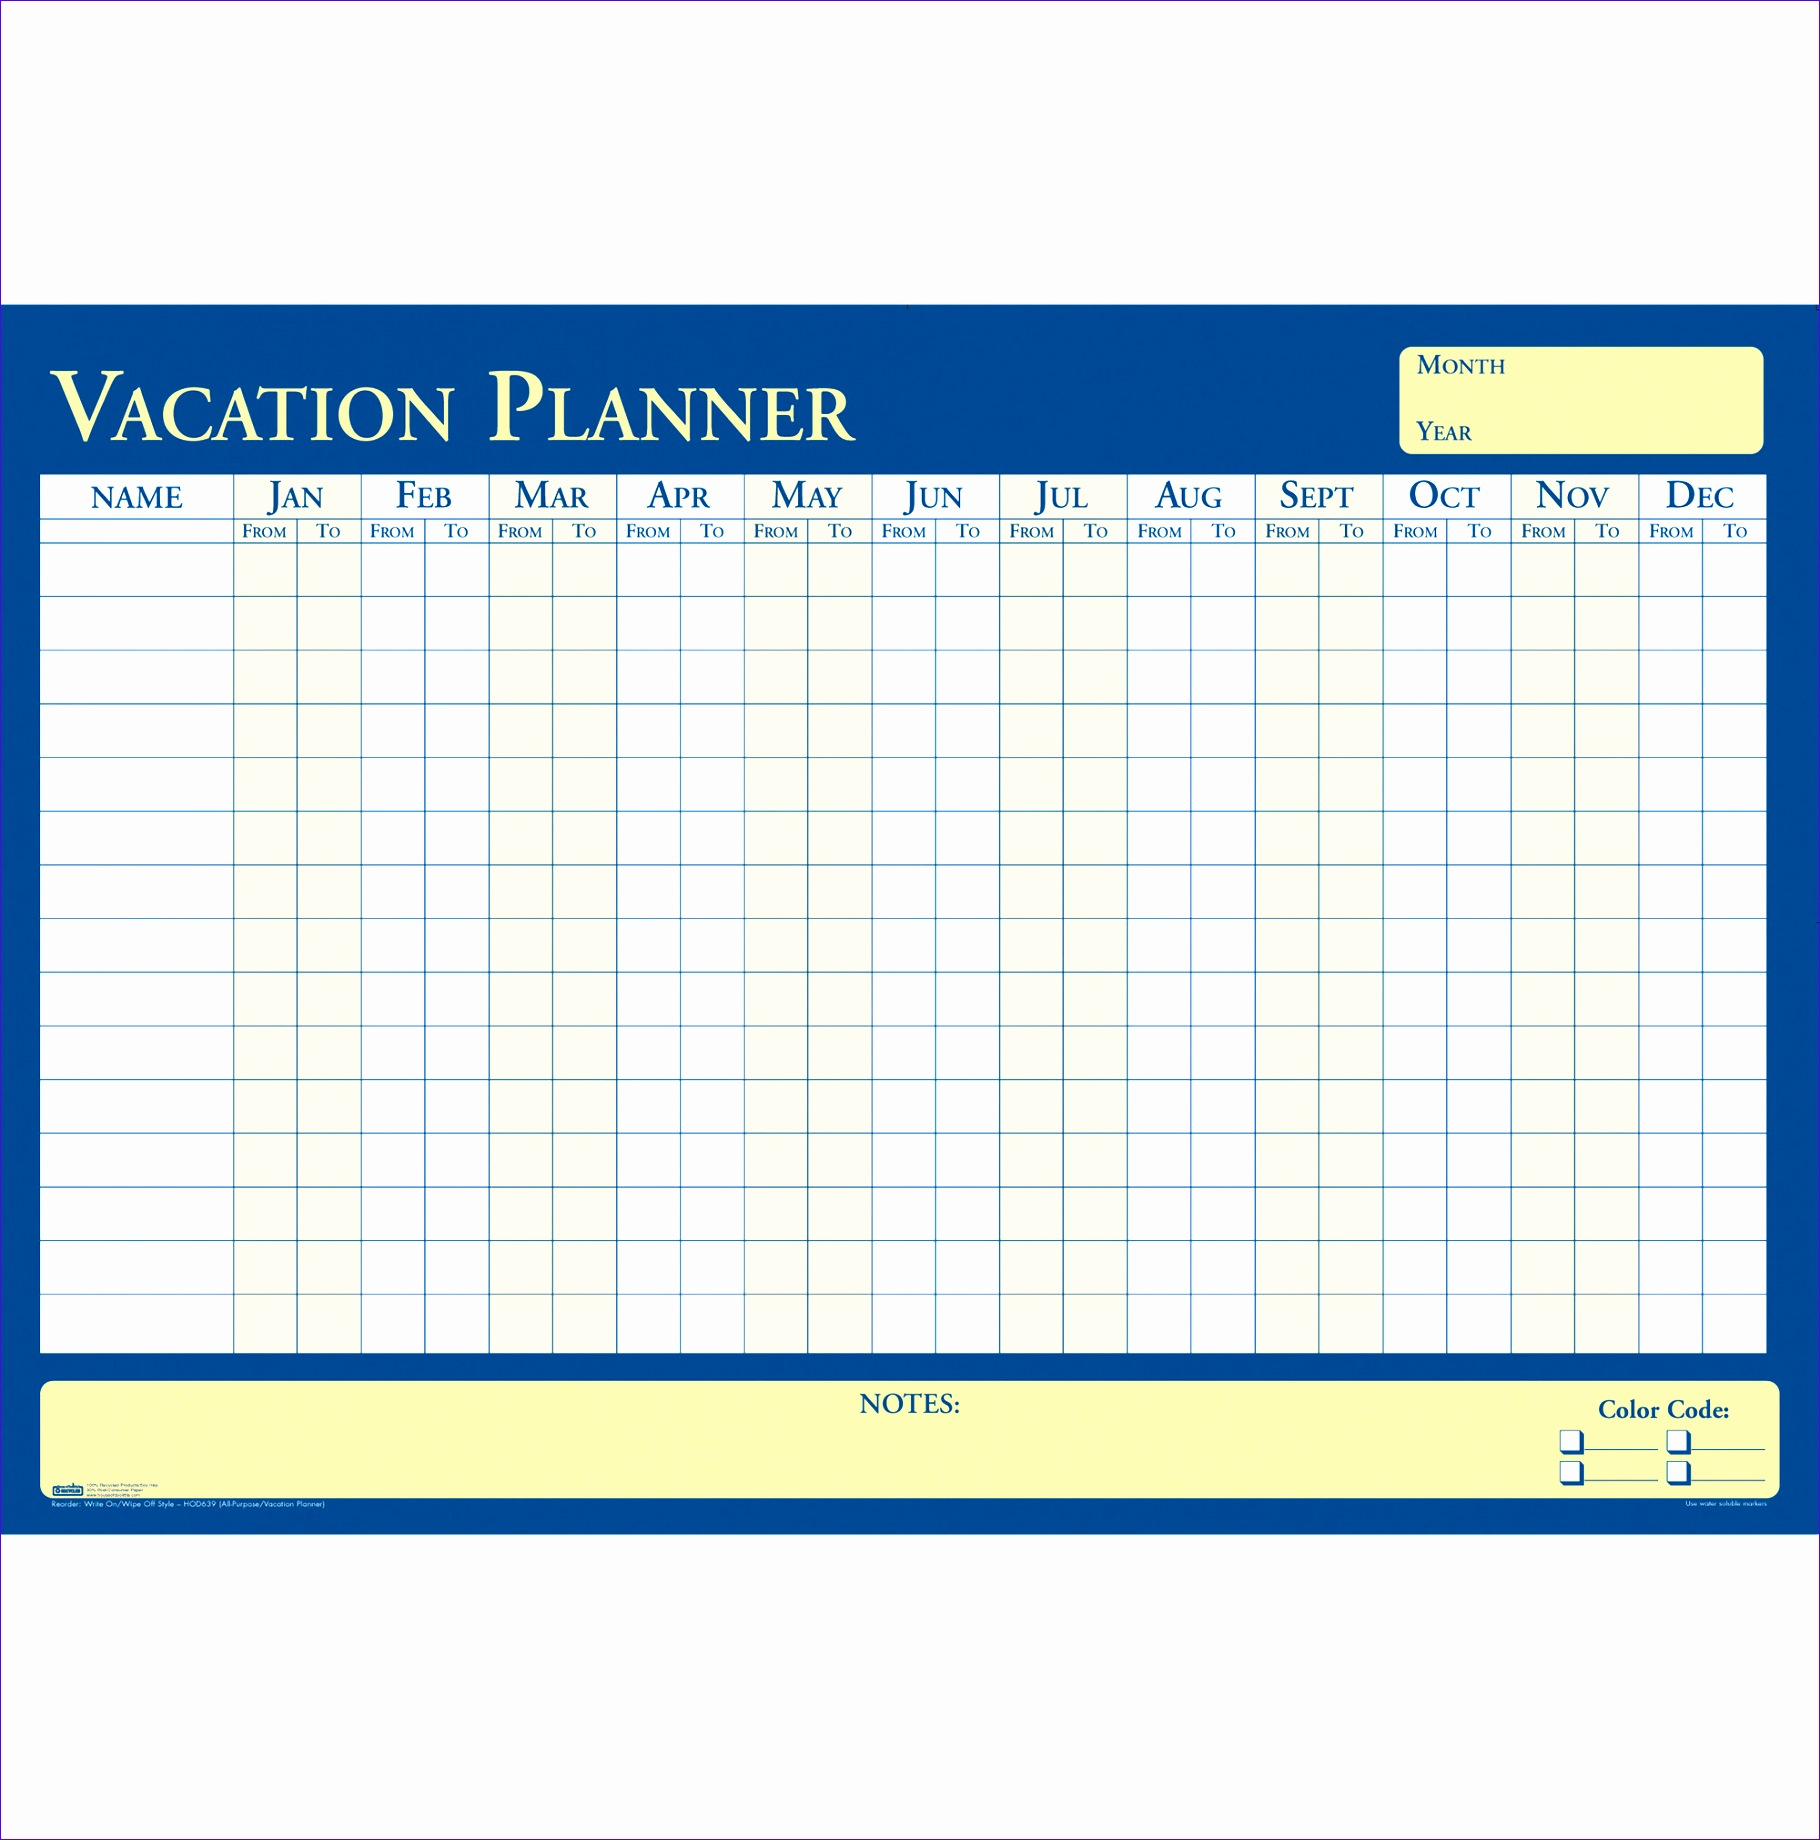 HOD639 House of Doolittle 639 All Purpose Laminated Vacation Planner 18201840